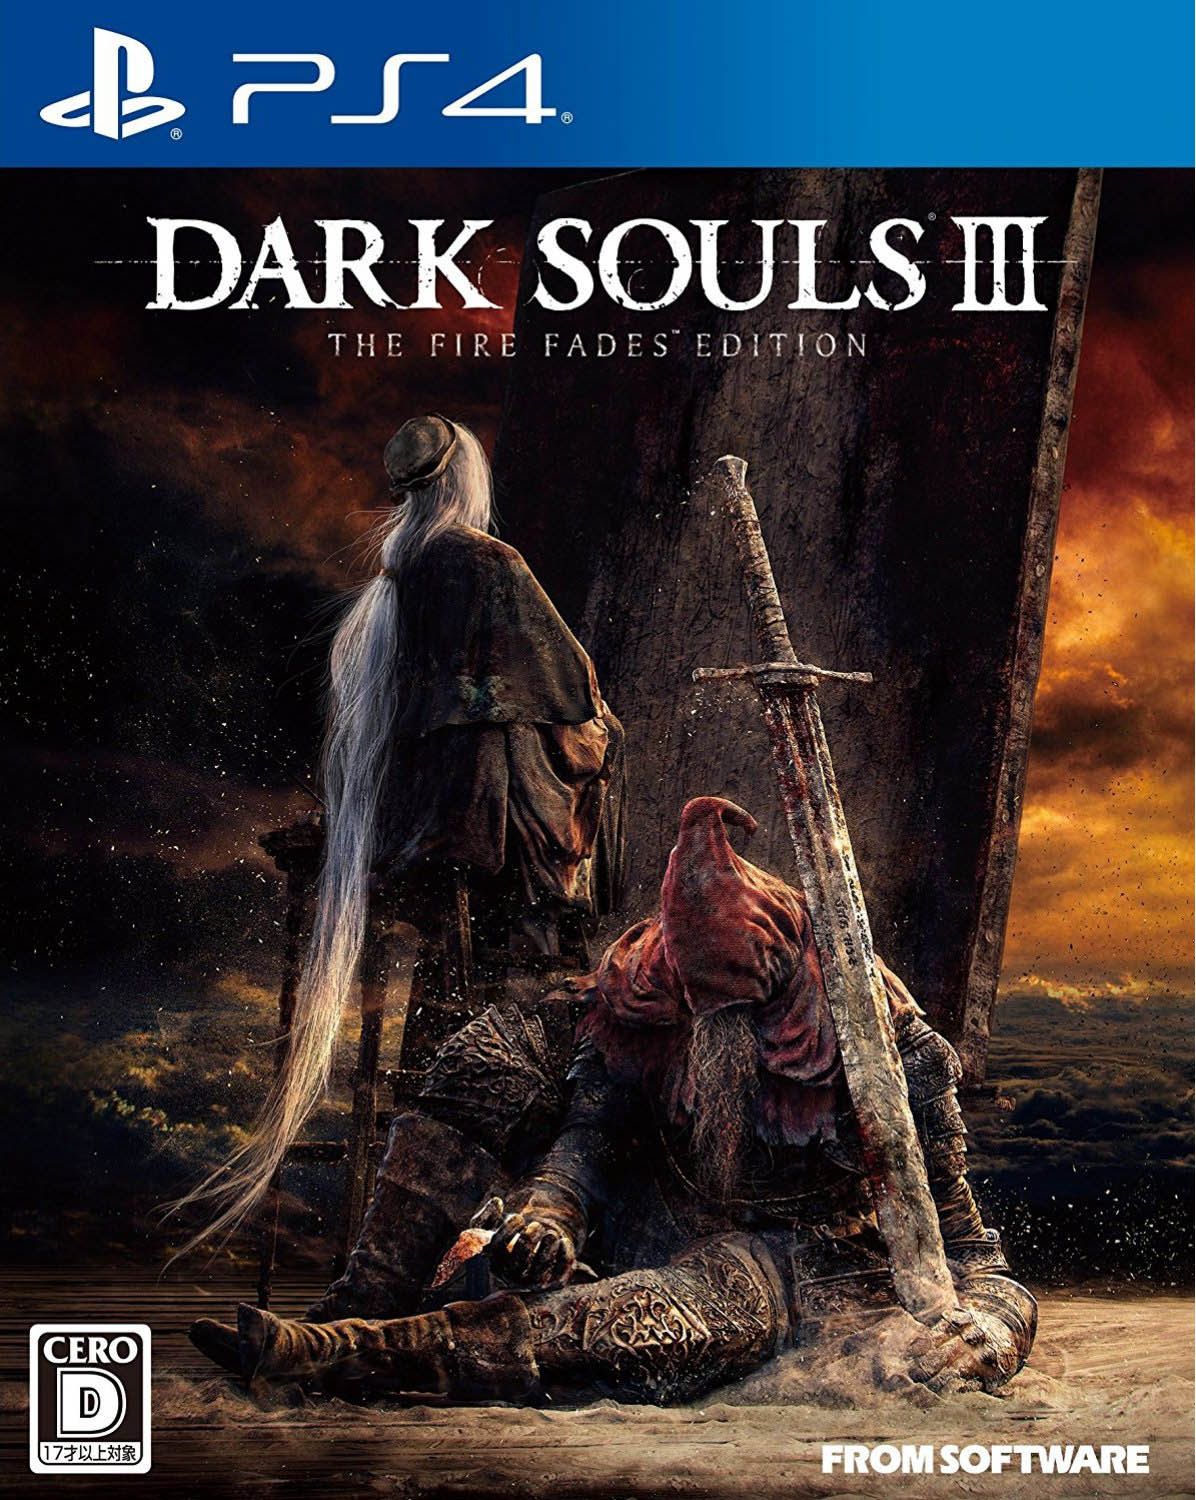 Dark Souls III The Fire Fades Edition издание в Японии